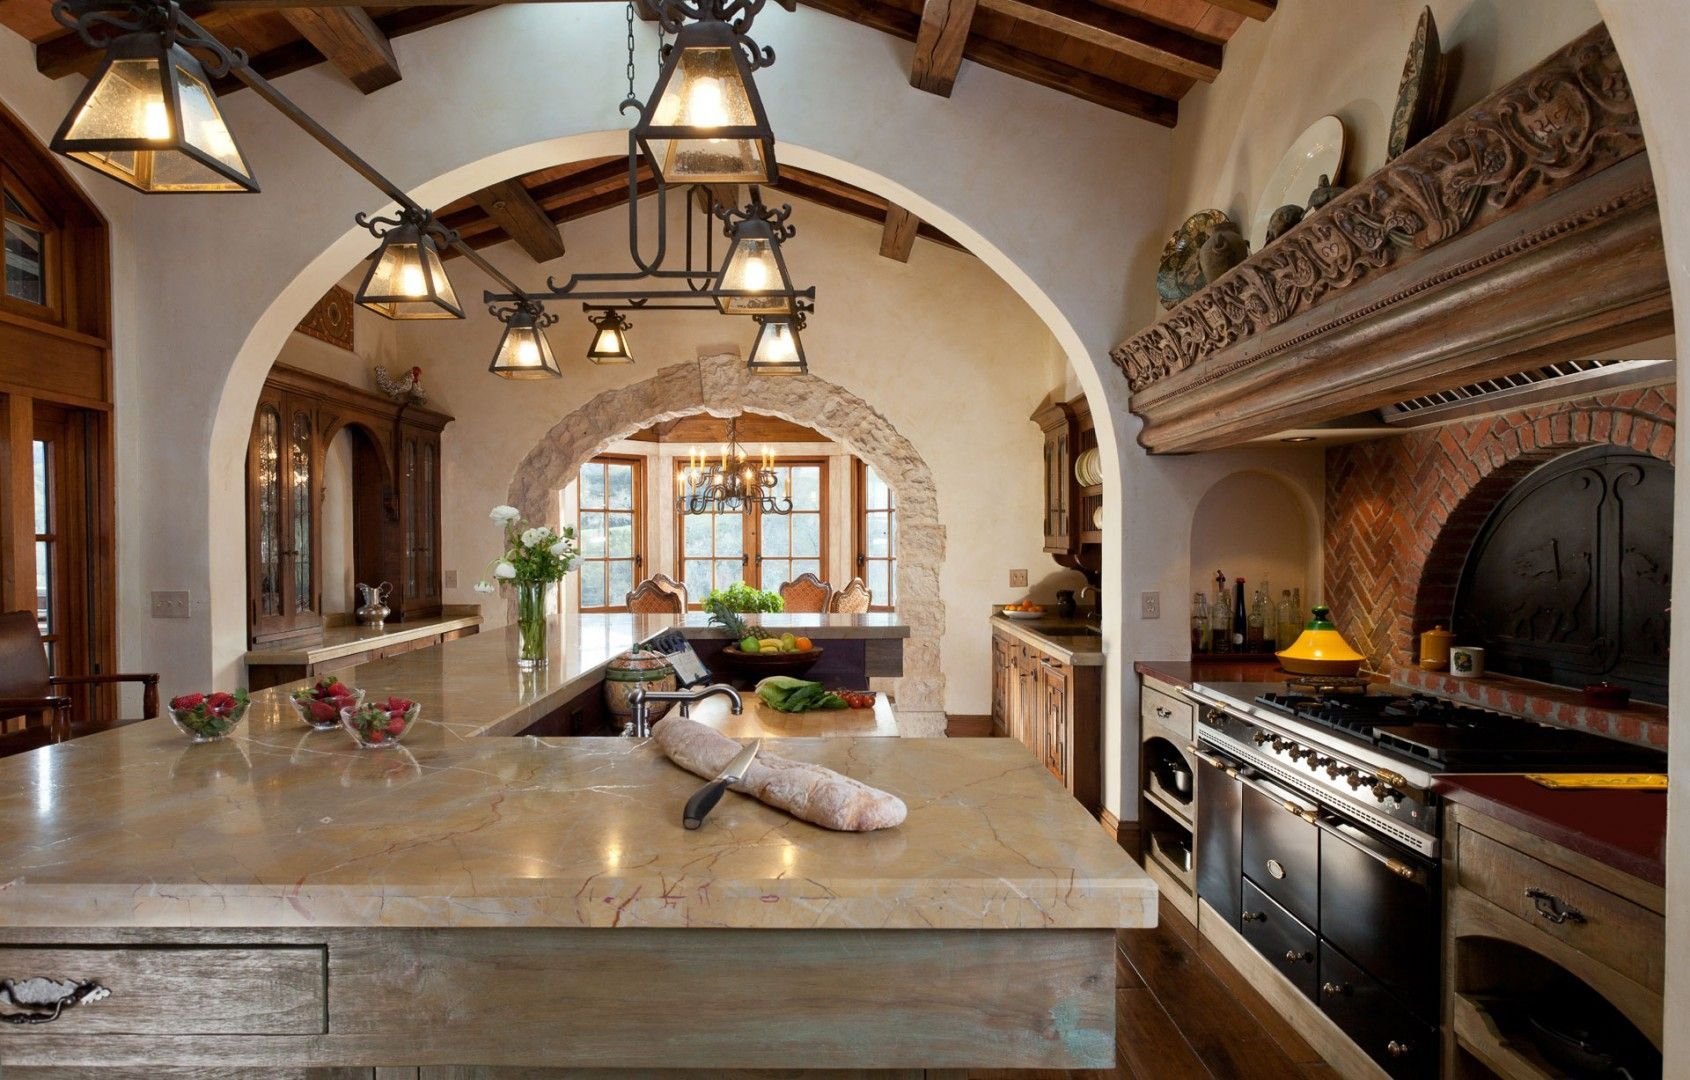 Spanish colonial kitchens a little dark but love the light fixtures the counter and the - Spanish home interior design ideas ...